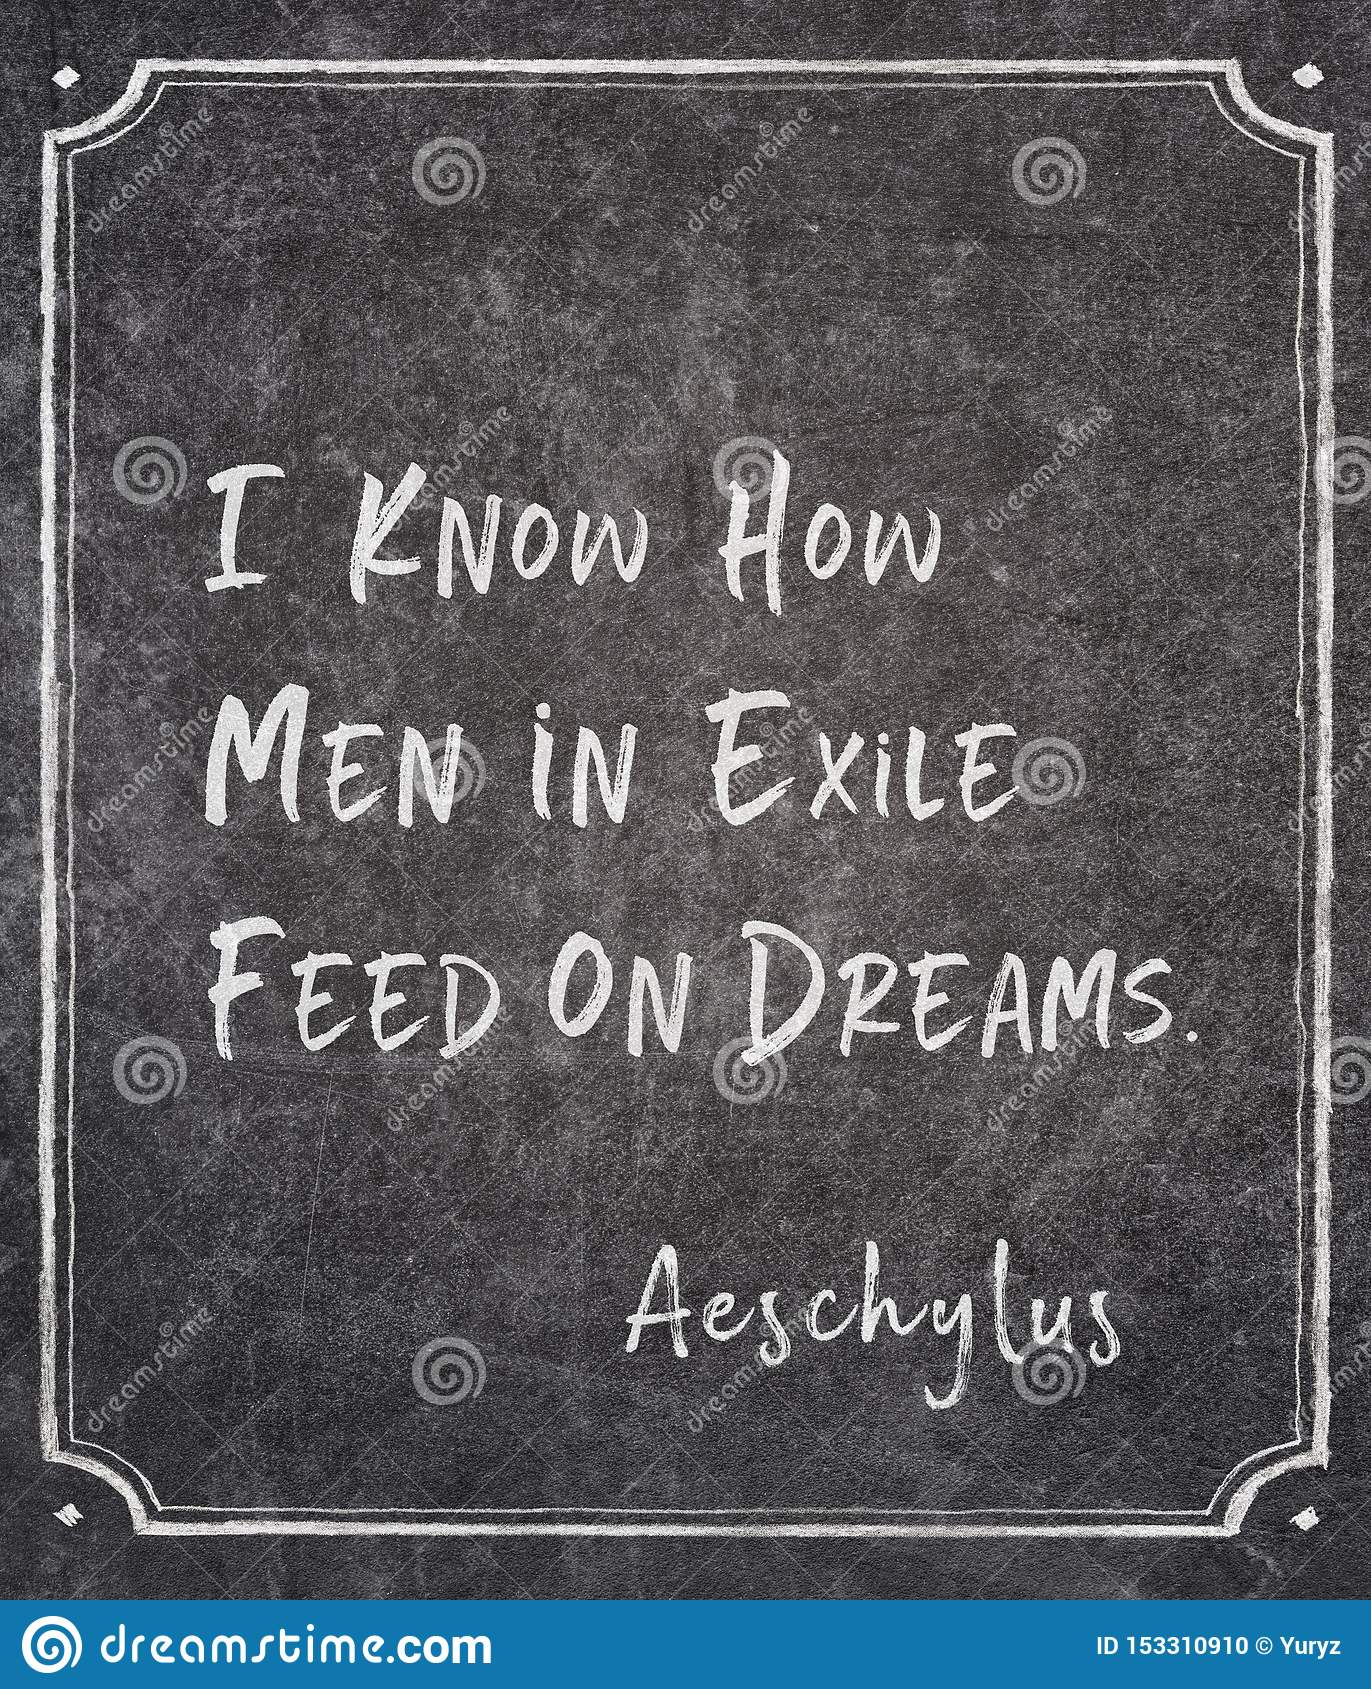 Men in exile Aeschylus